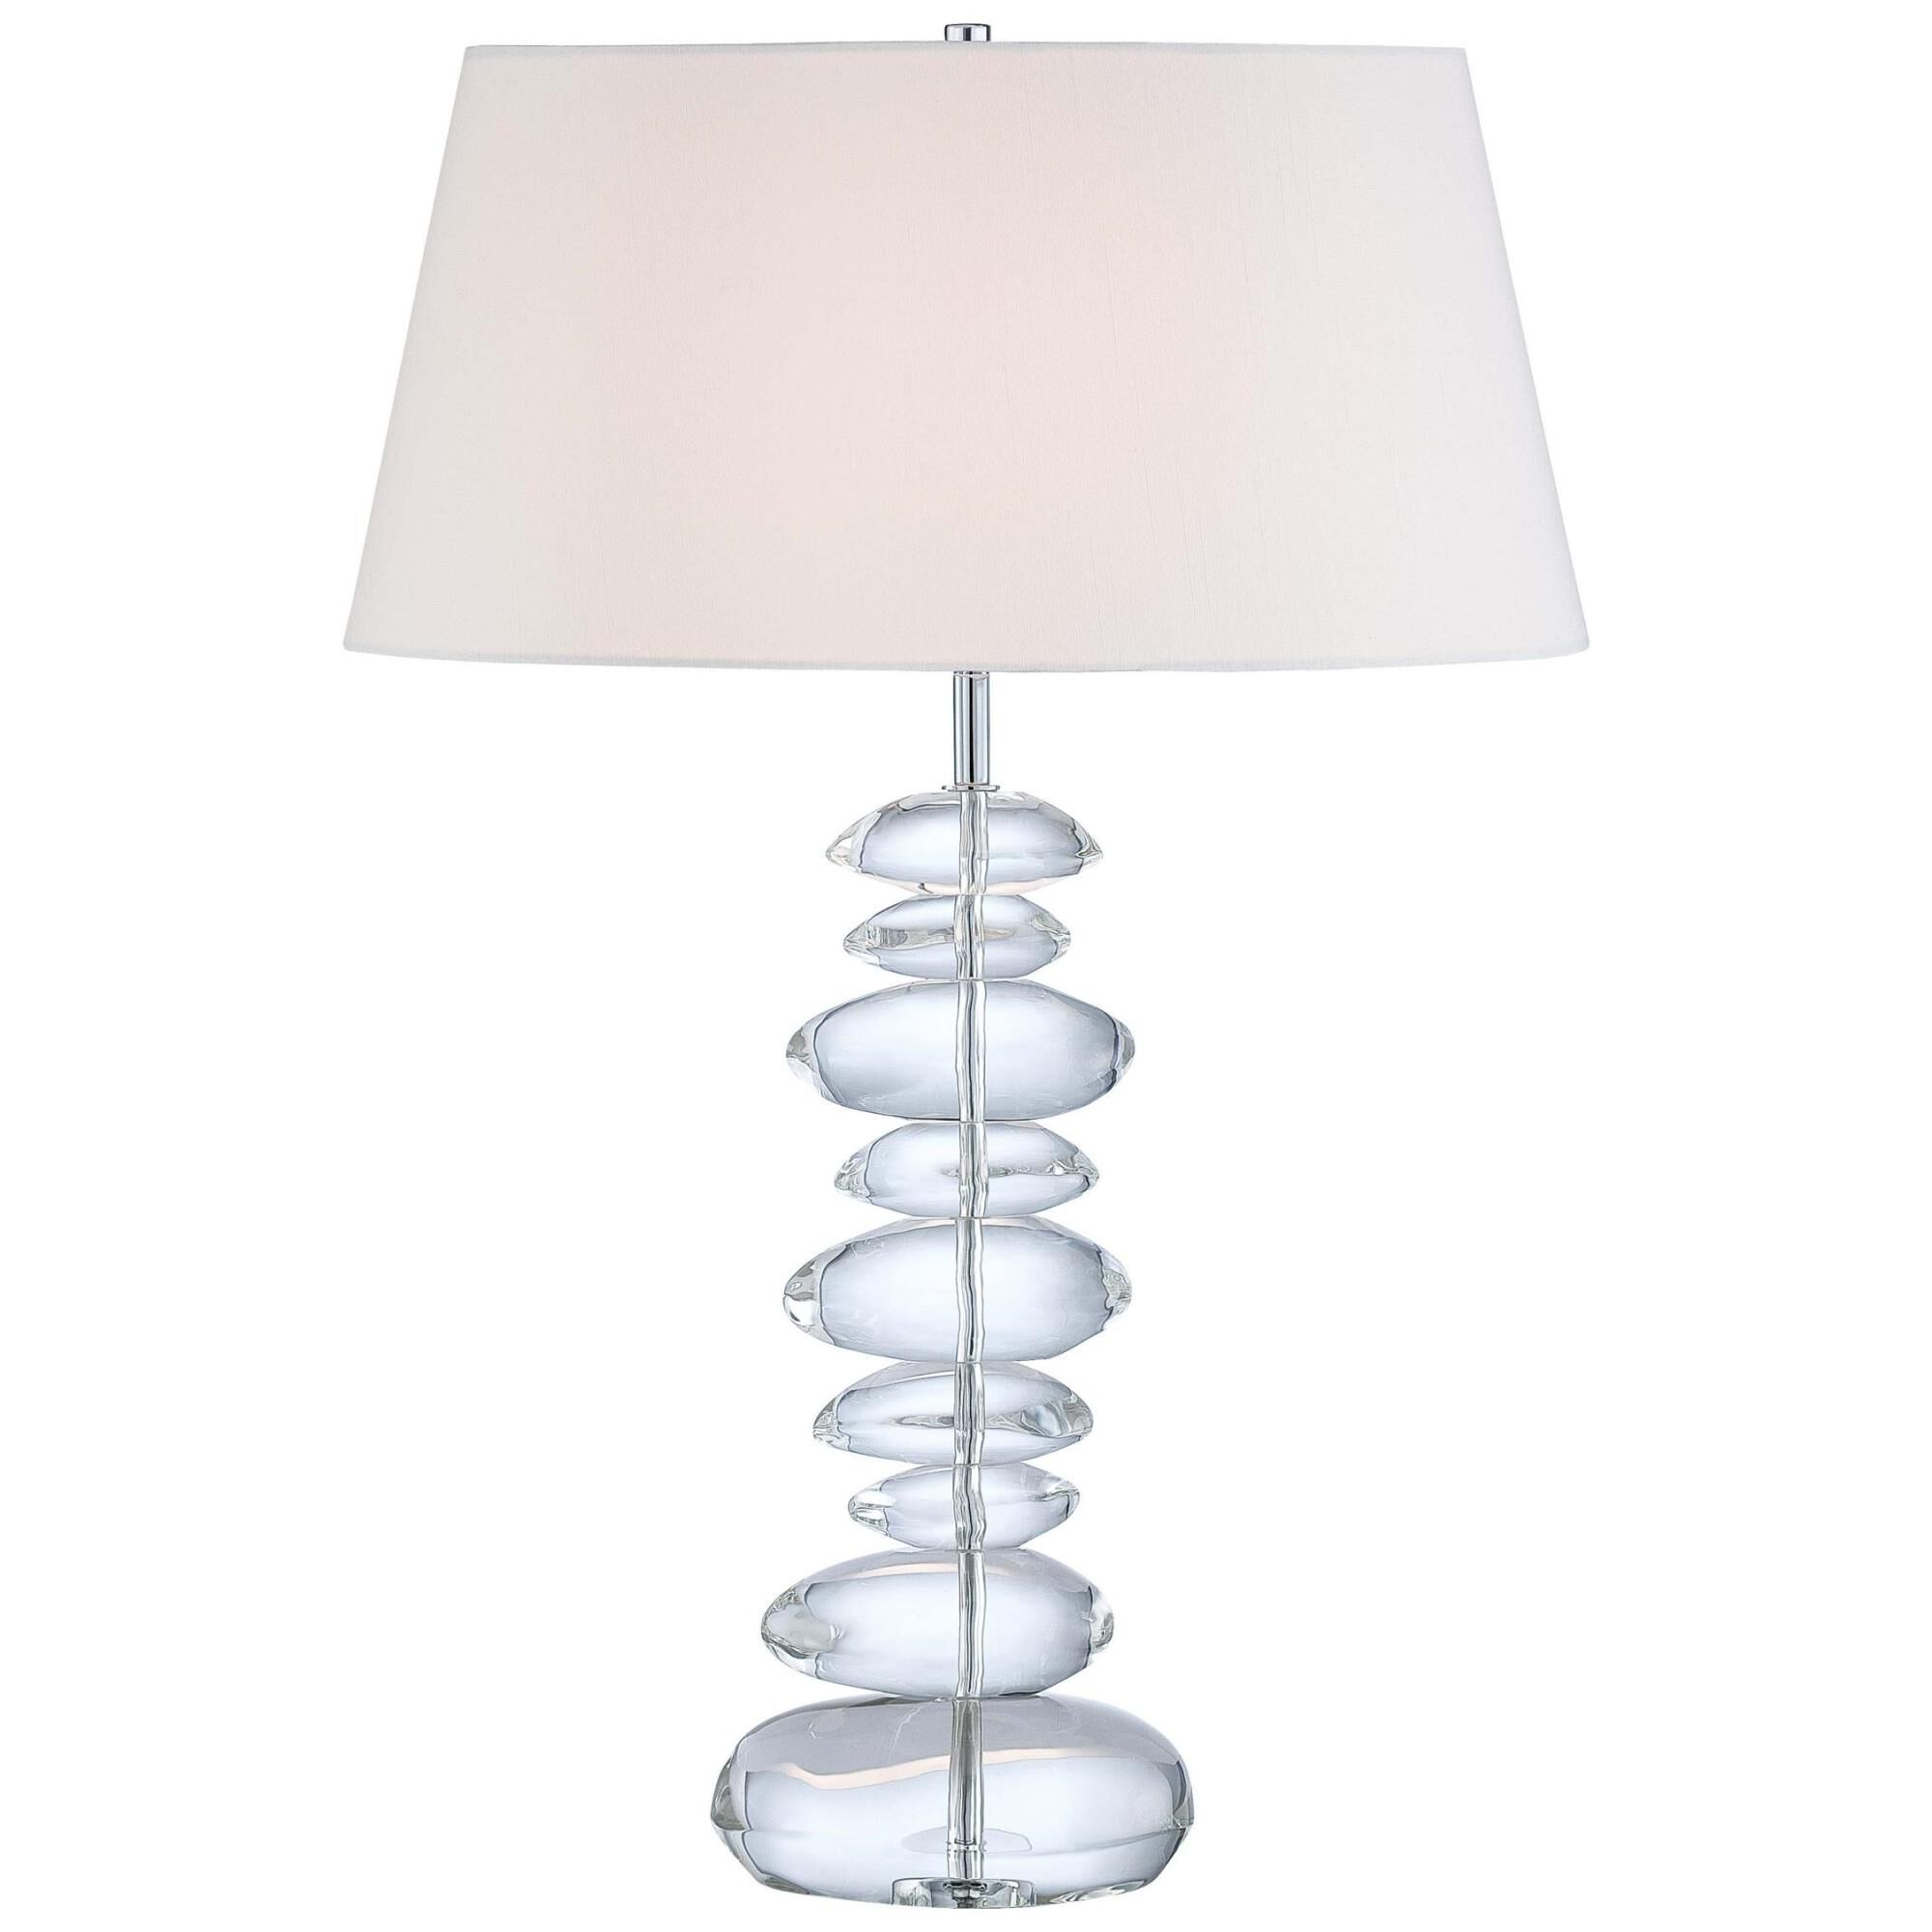 Kovacs 29 Inch Table Lamp - P725-077 - Modern Contemporary